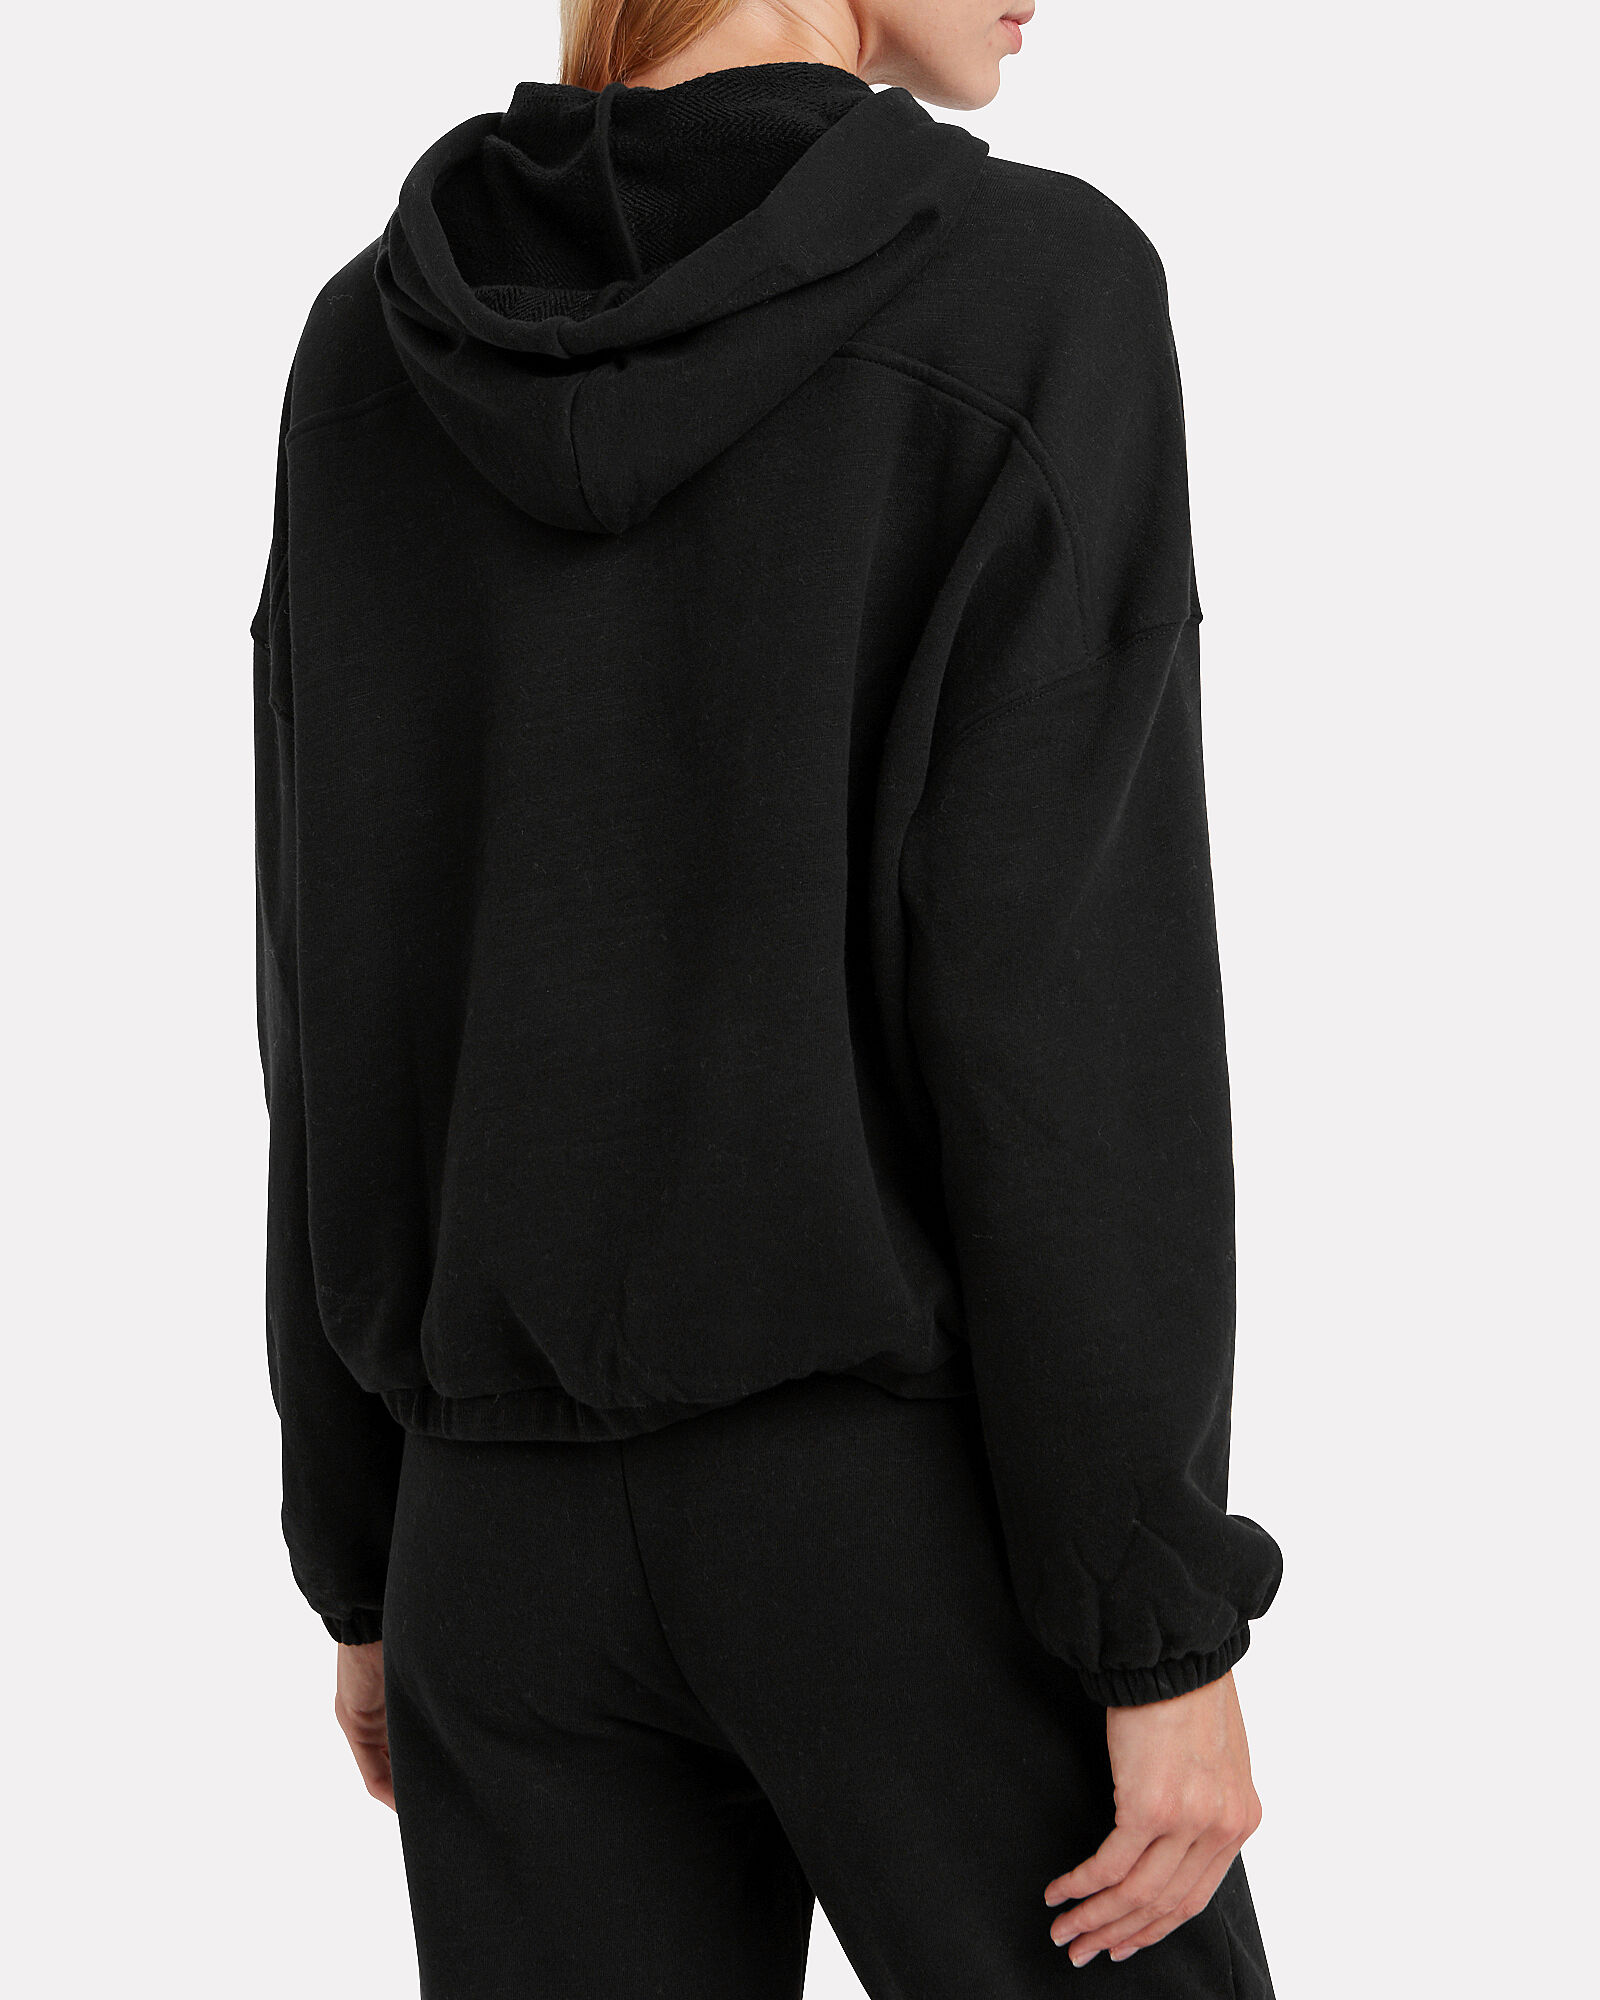 French Terry Sweatshirt, BLACK, hi-res